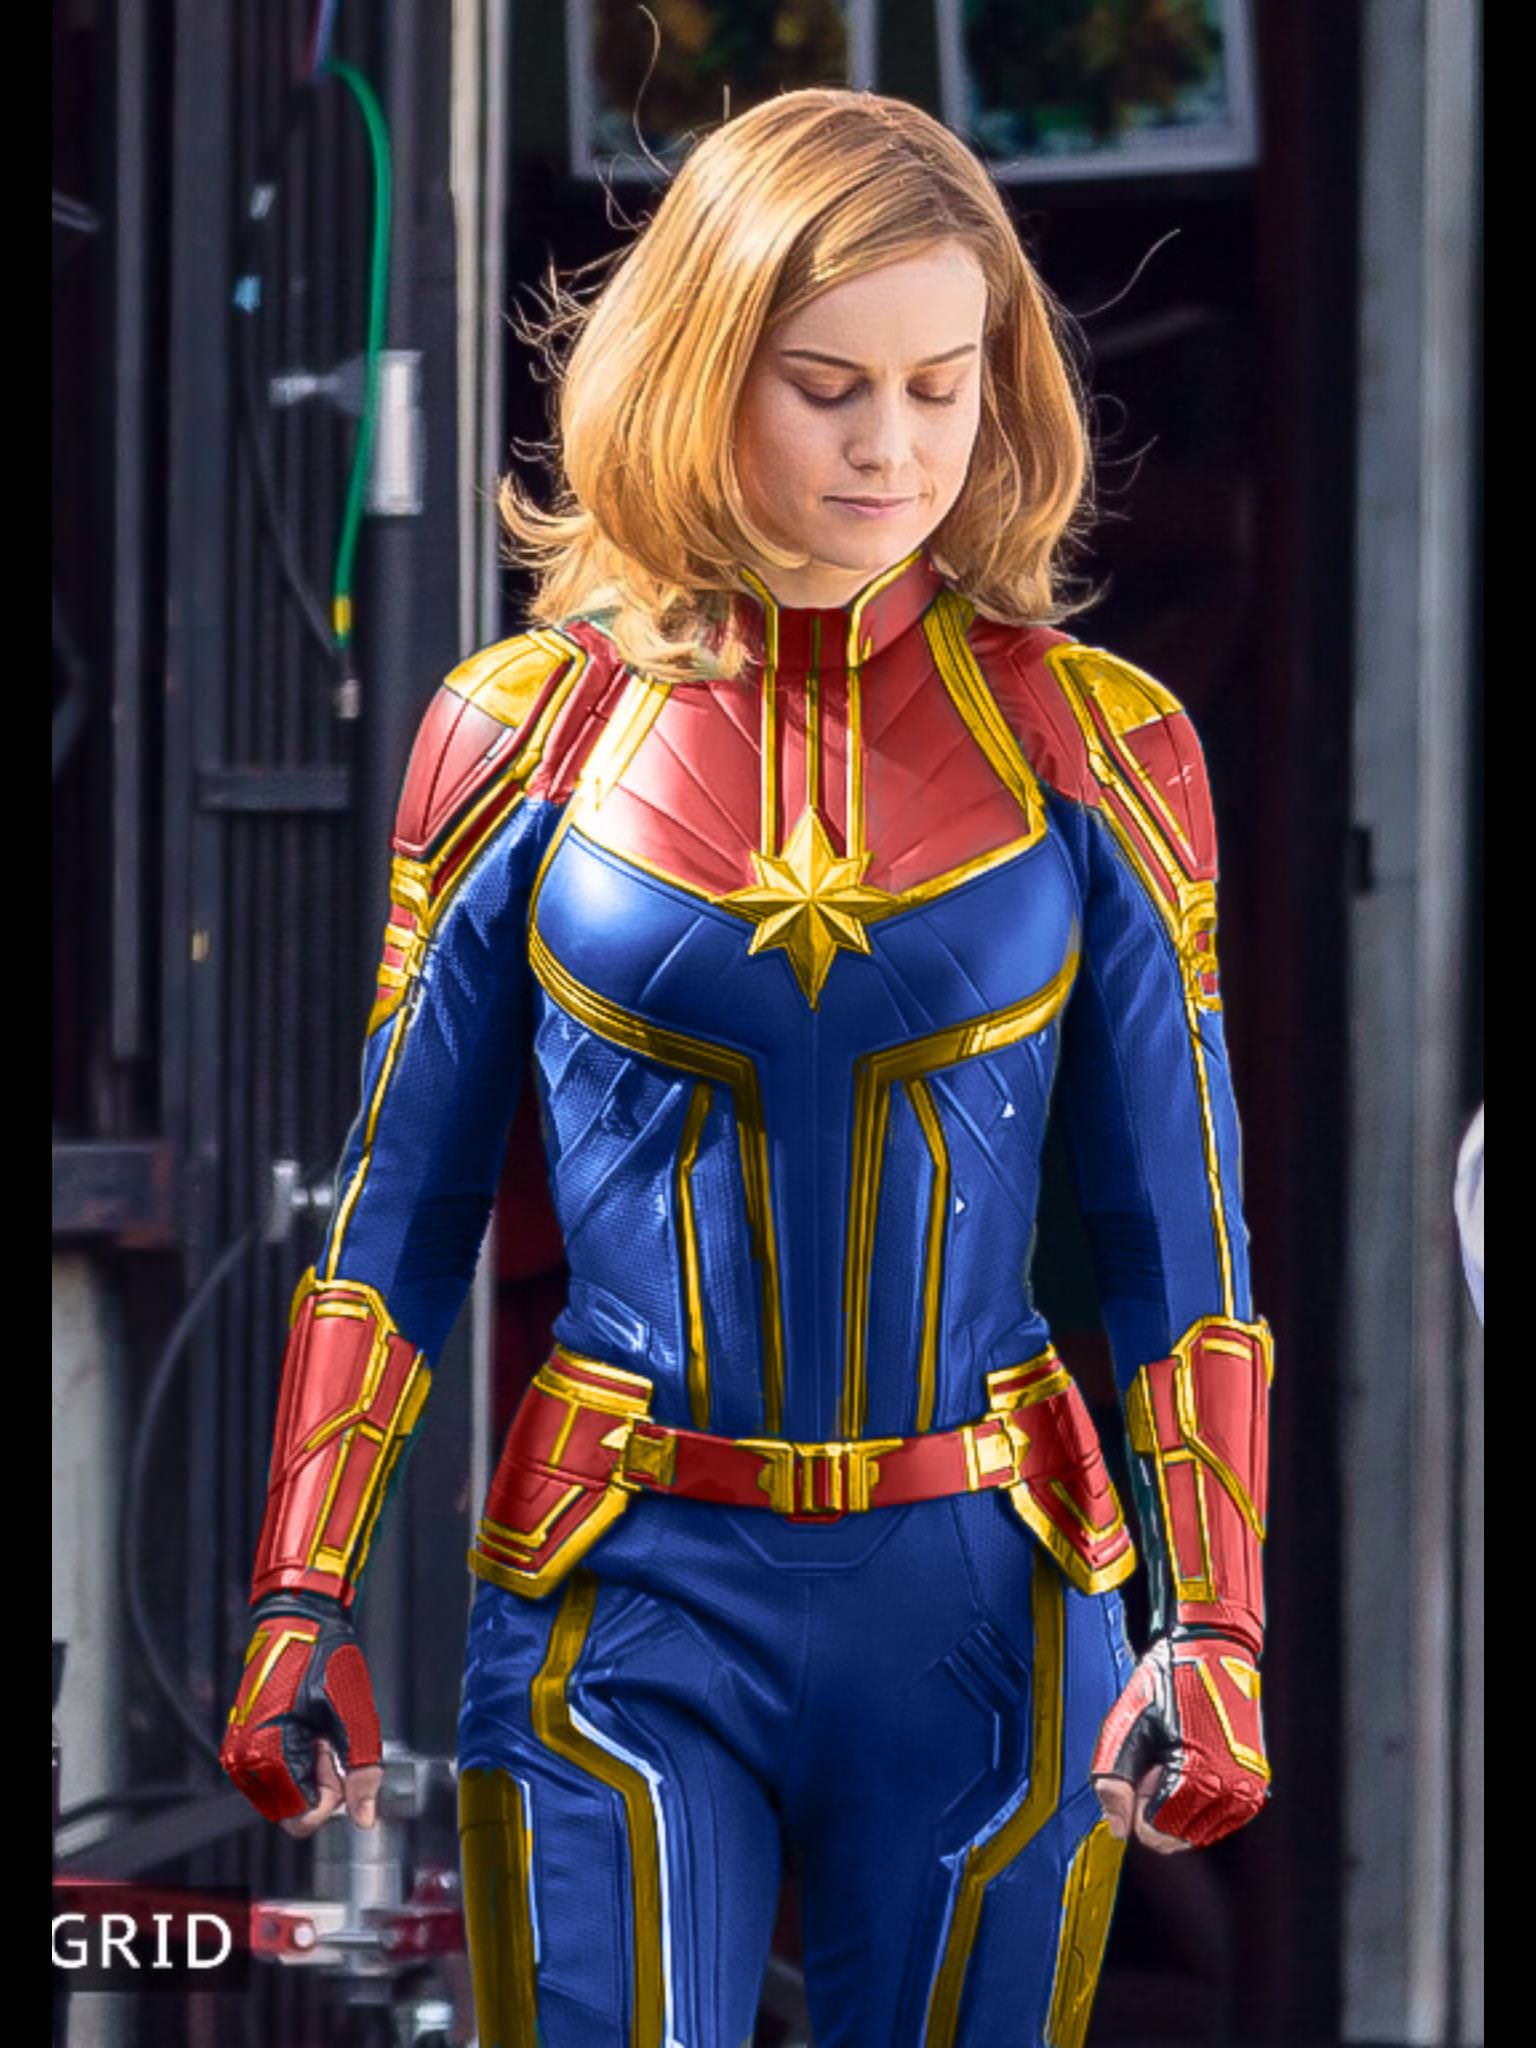 Captain Marvel Suit Front View Coloring Attempt Captain Marvel Costume Captain Marvel Trailer Captain Marvel 10 marvel characters more powerful than mcu's captain marvel. pinterest